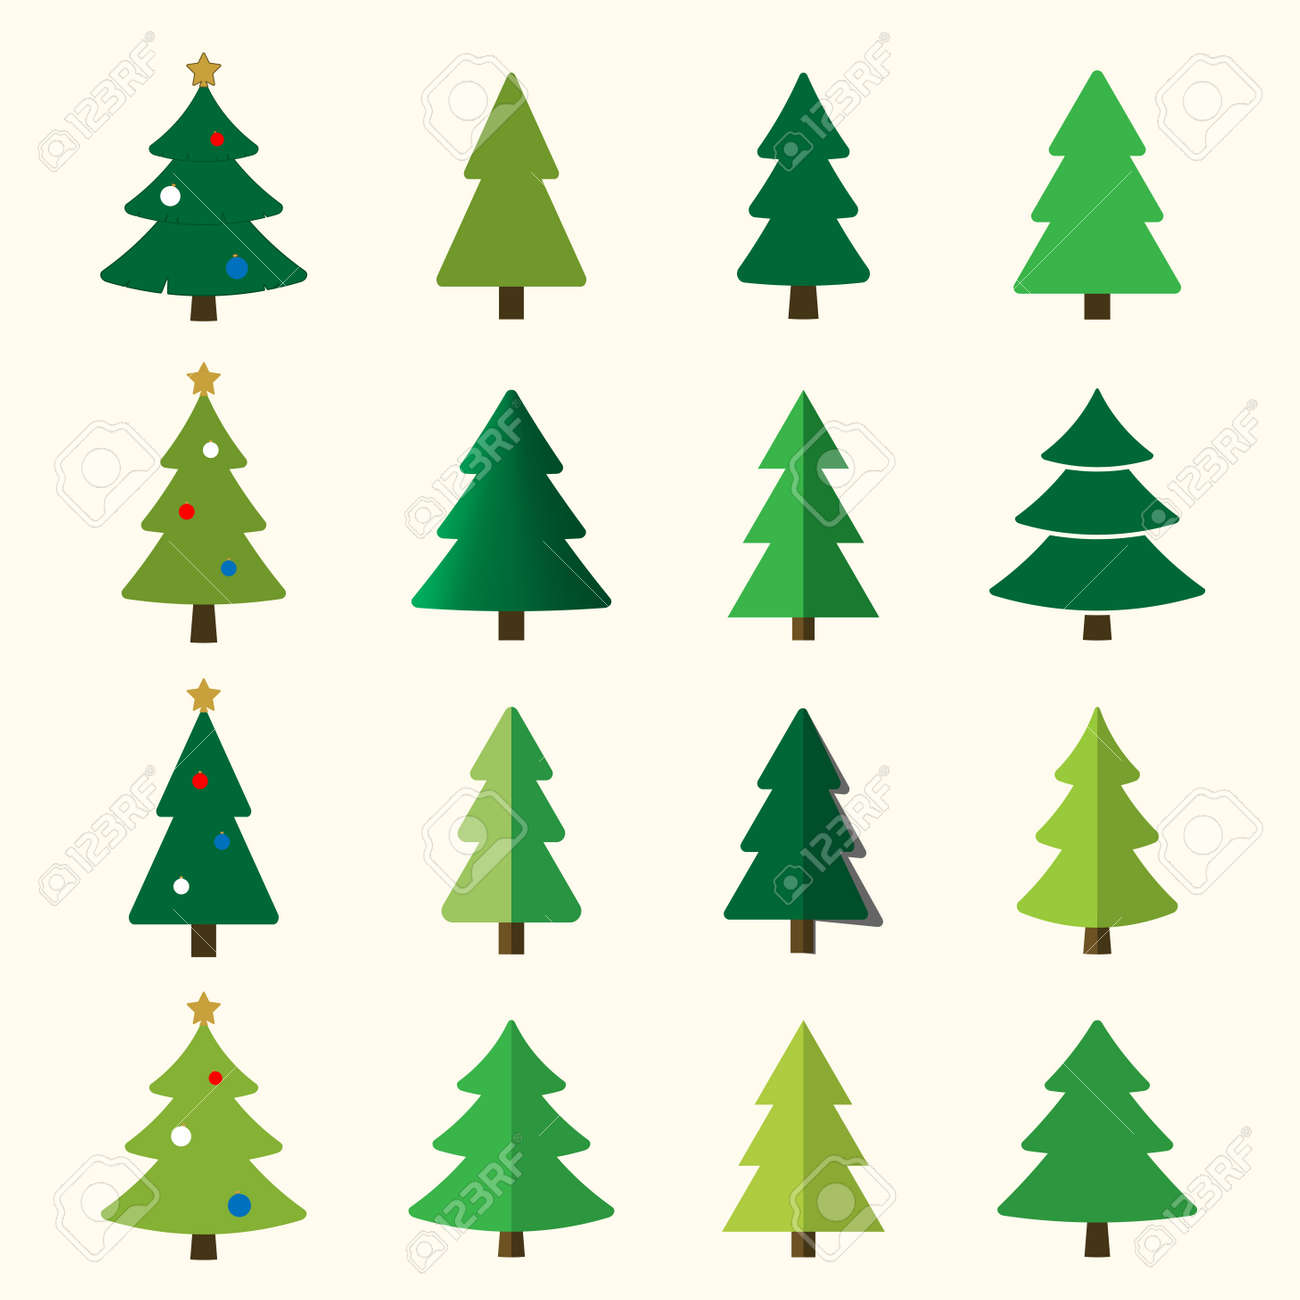 Christmas Tree Illustration.Christmas Tree Cartoon Icons Set Green Silhouette Decoration